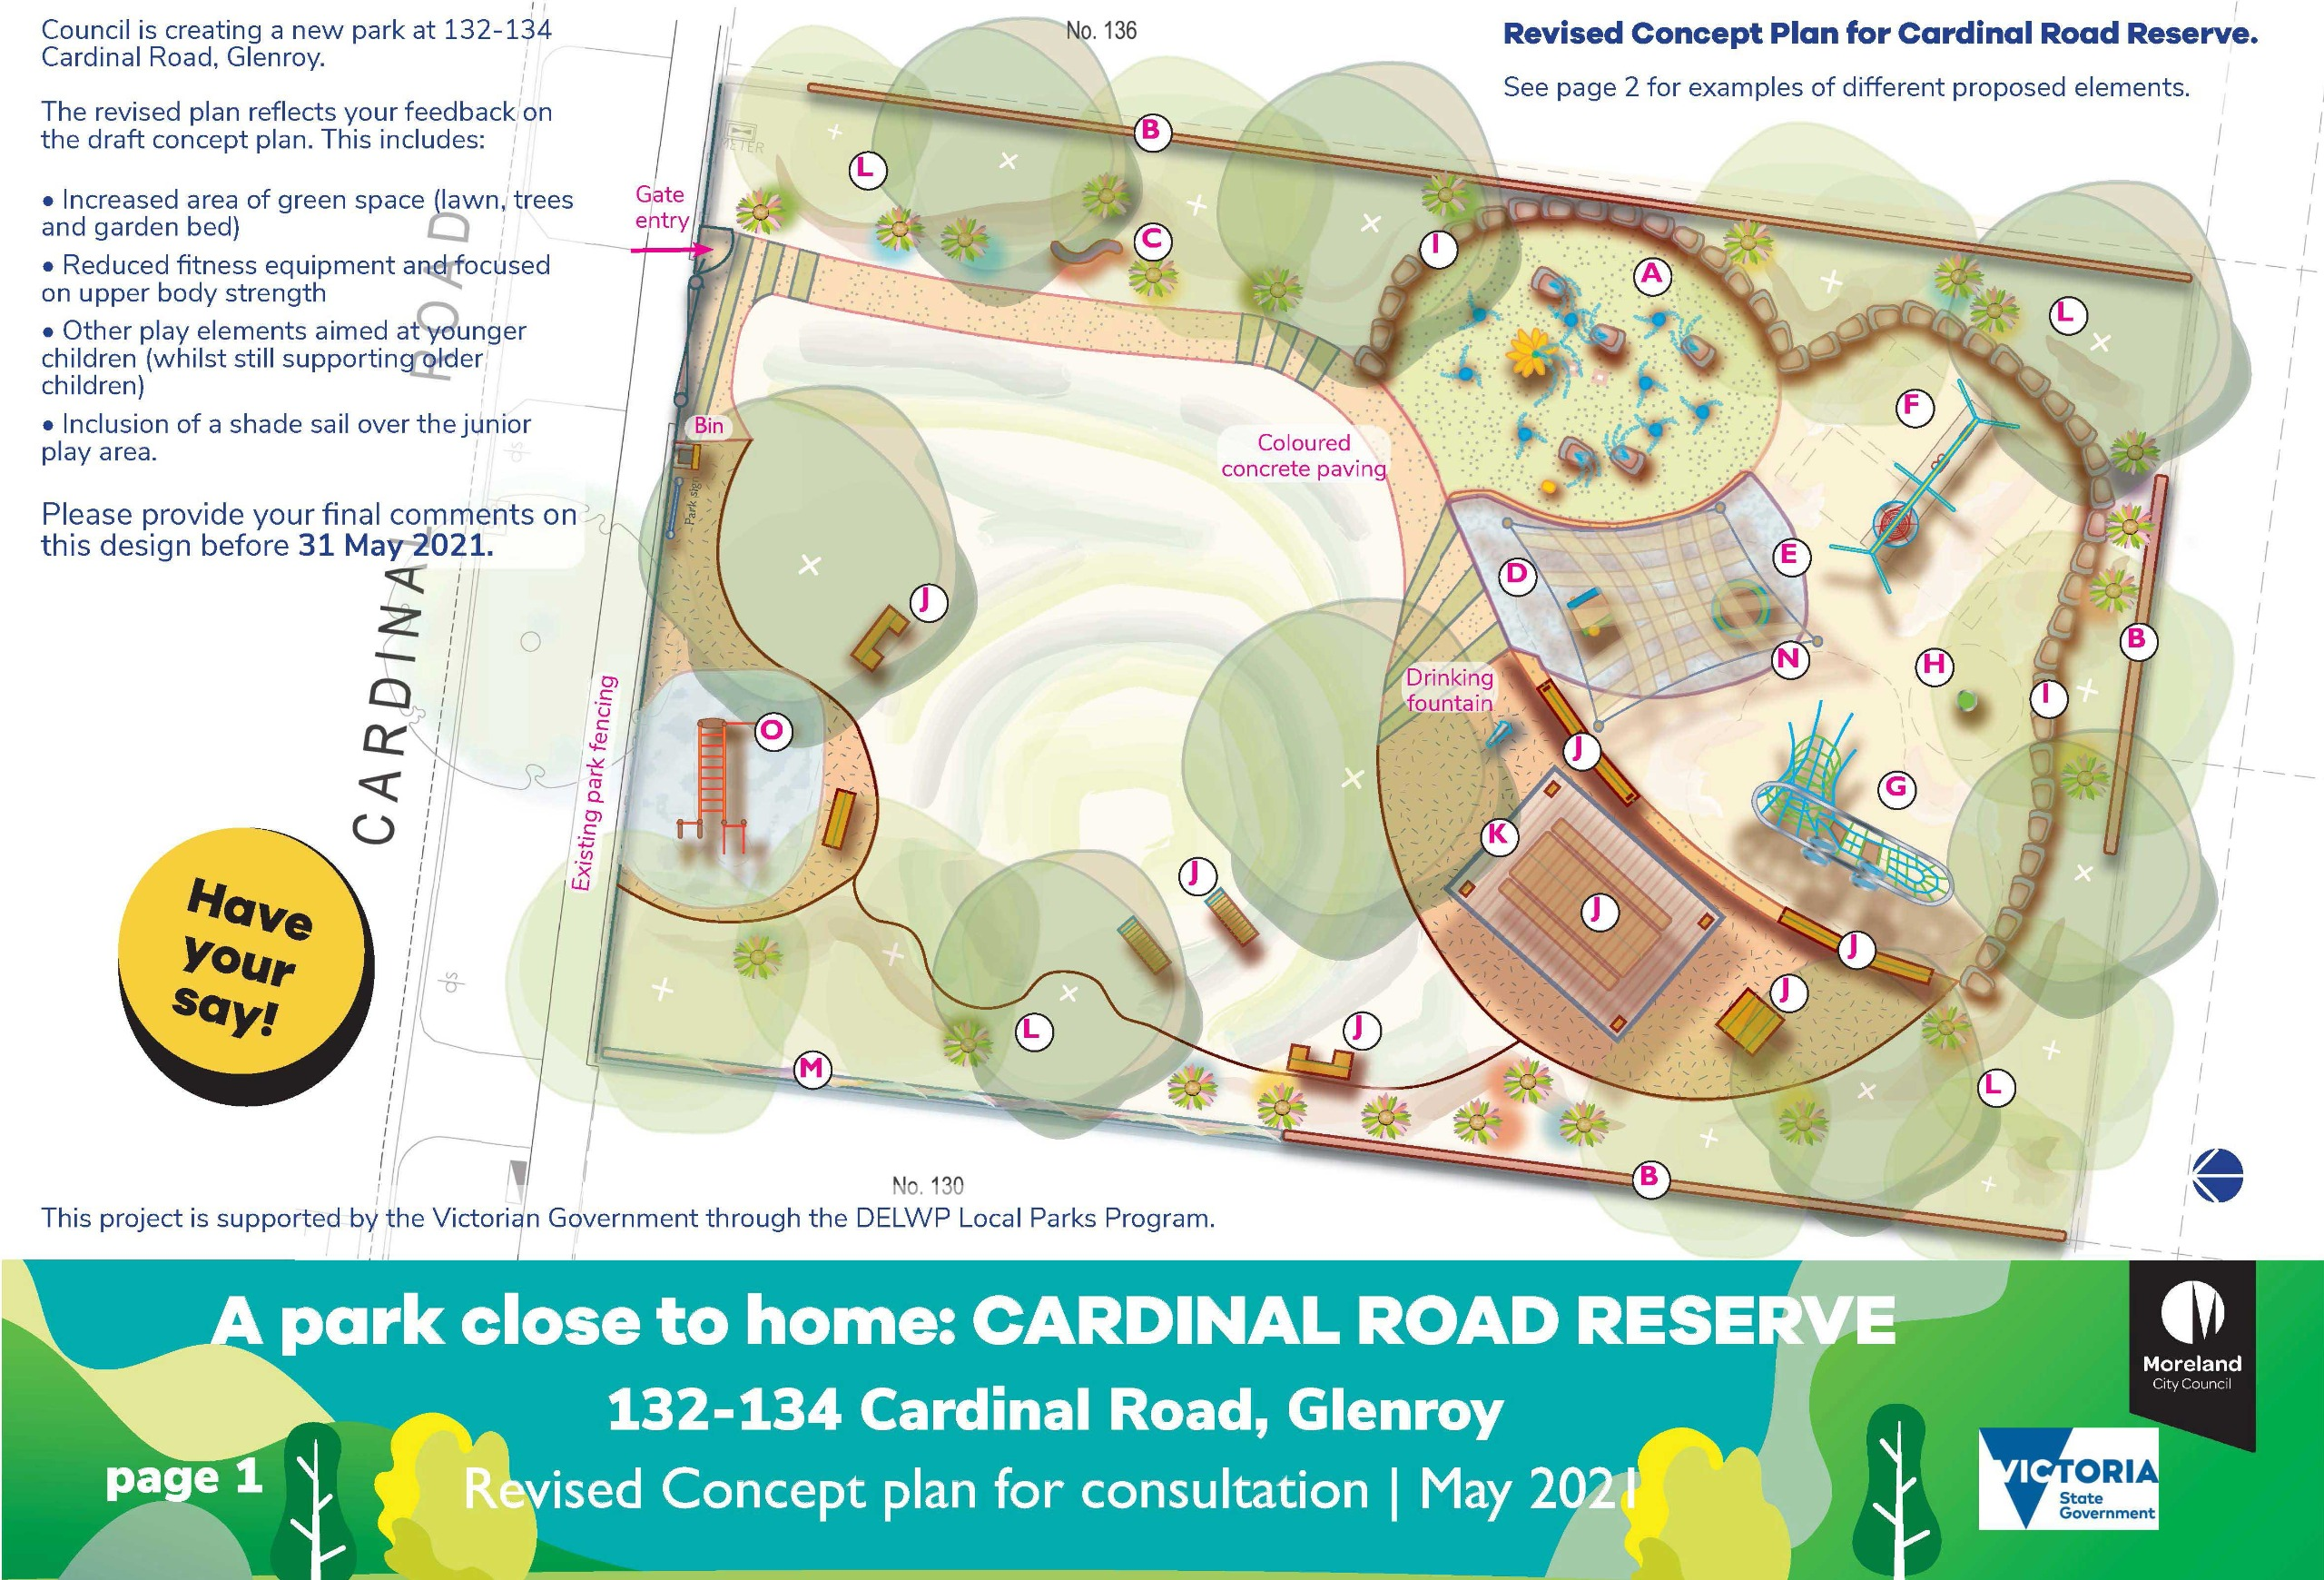 Cardinal Road Reserve revised concept plan page 1